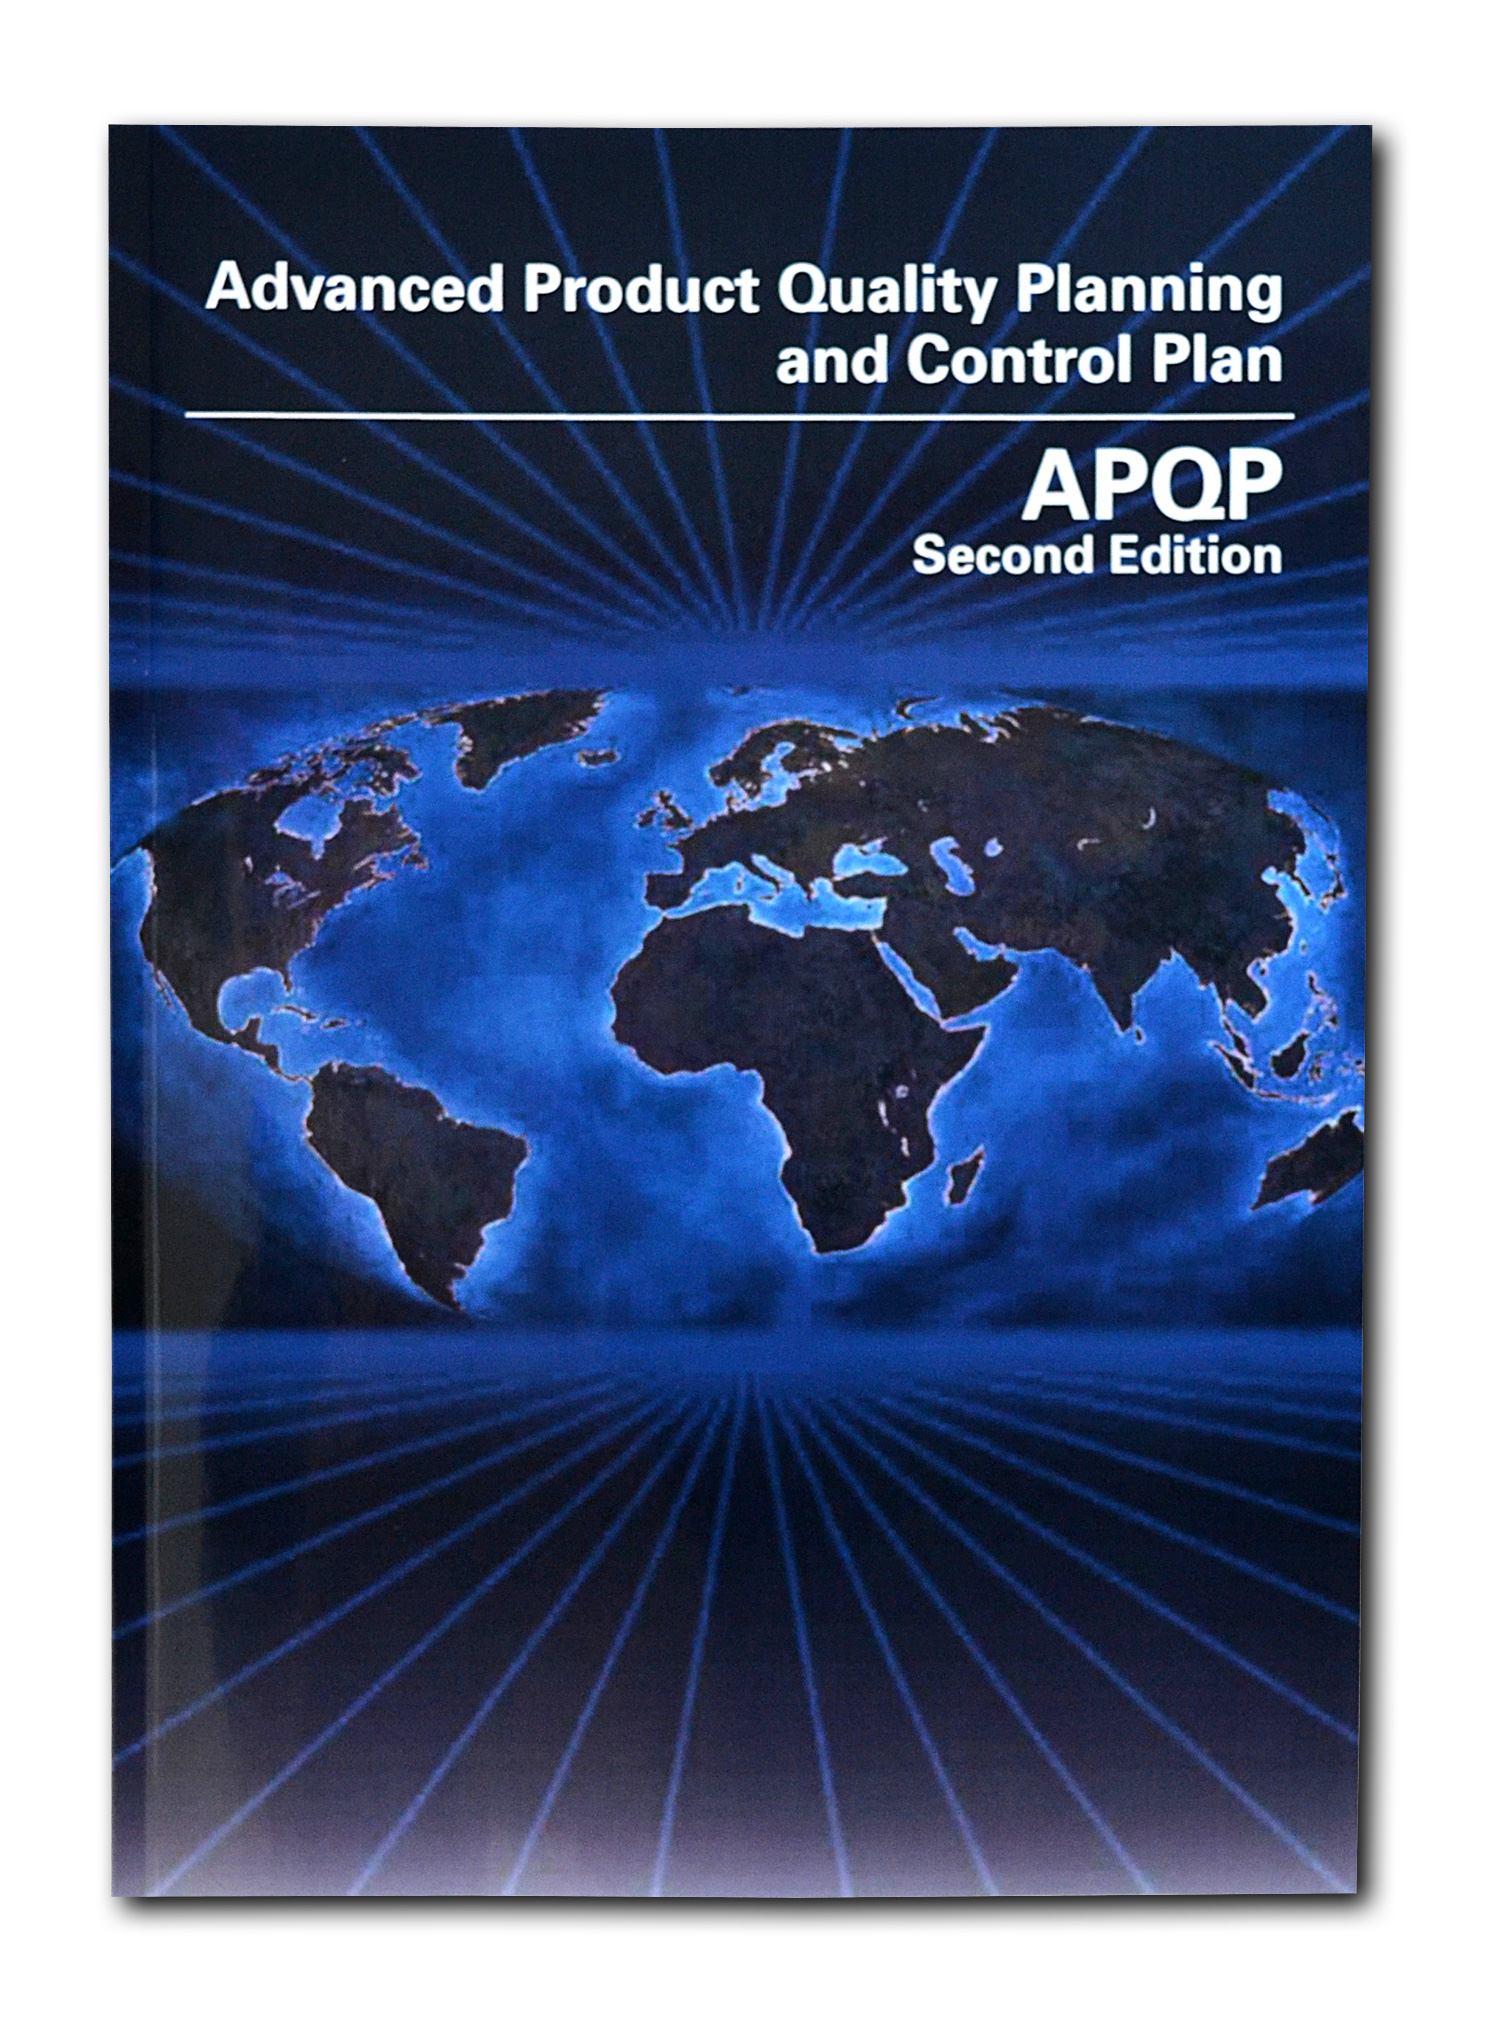 aiag advanced product quality planning and control plan apqp rh lmrglobal co uk aiag ppap manual 4th edition pdf free download ppap manual 4th edition pdf